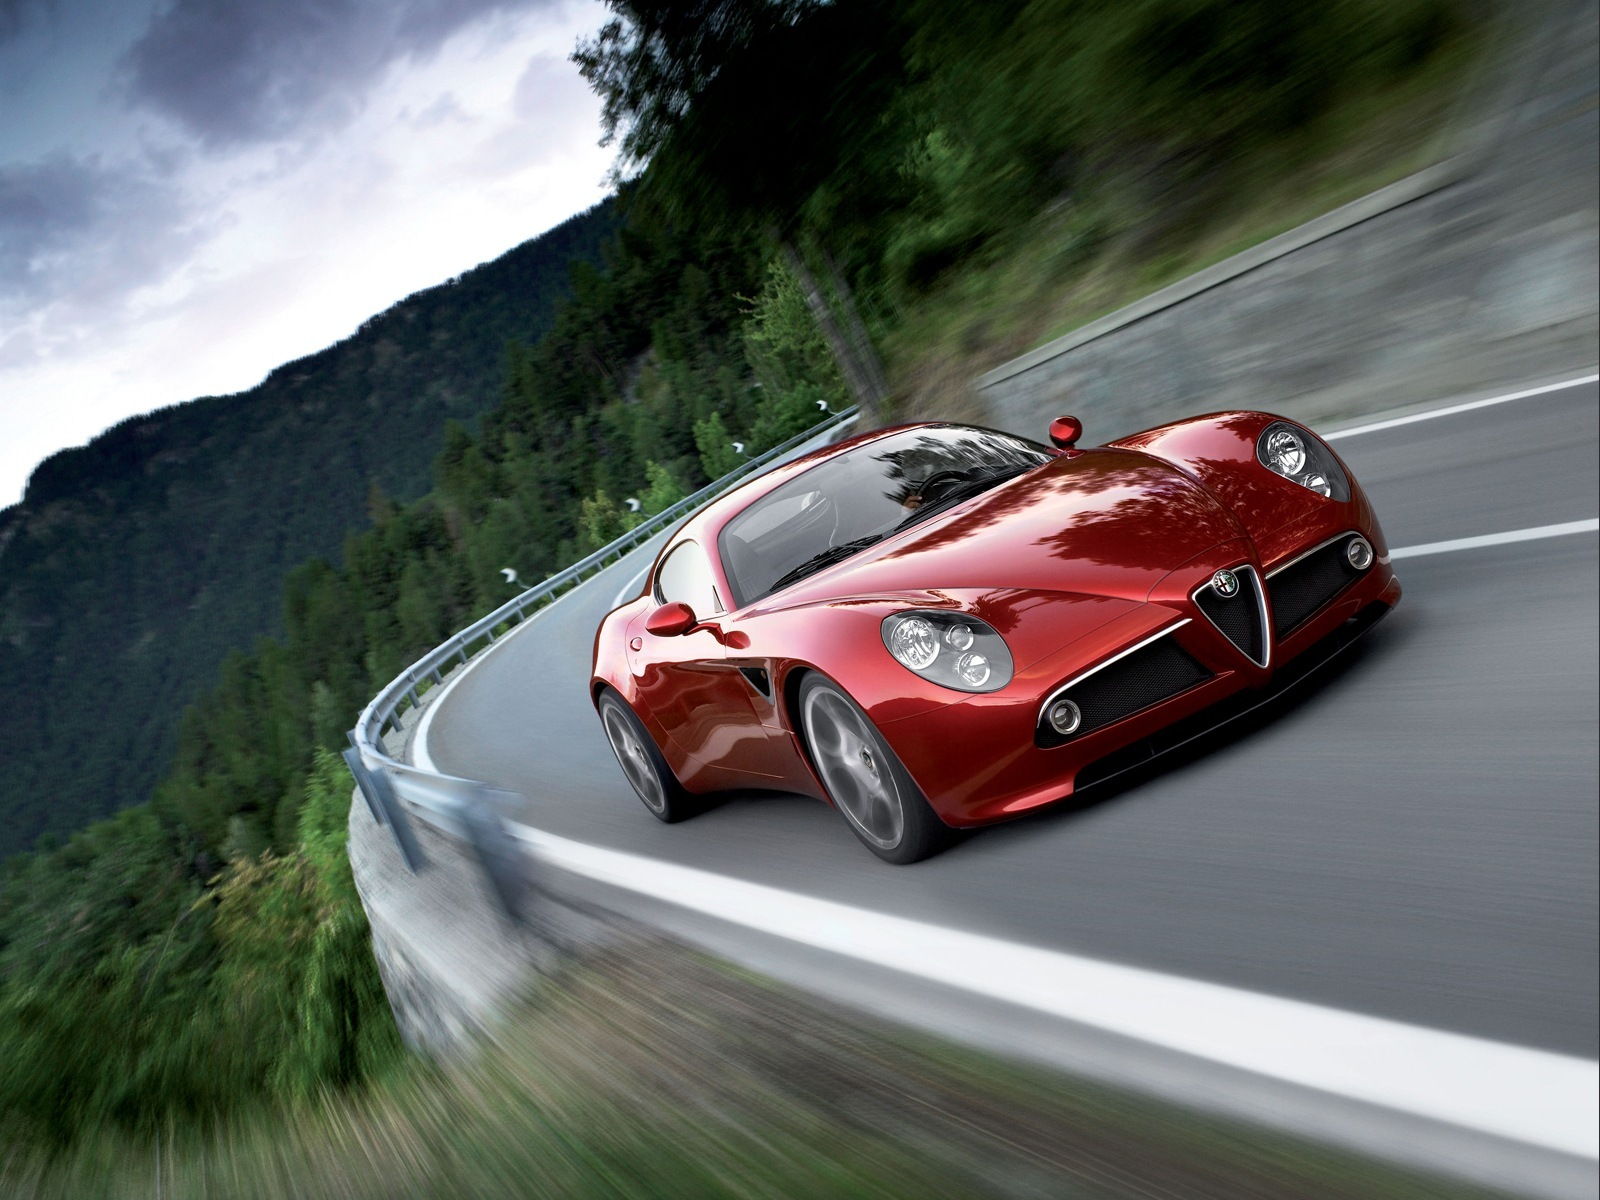 Alfa Romeo 8C Competizione is an art. A car made with beauty and curves kept